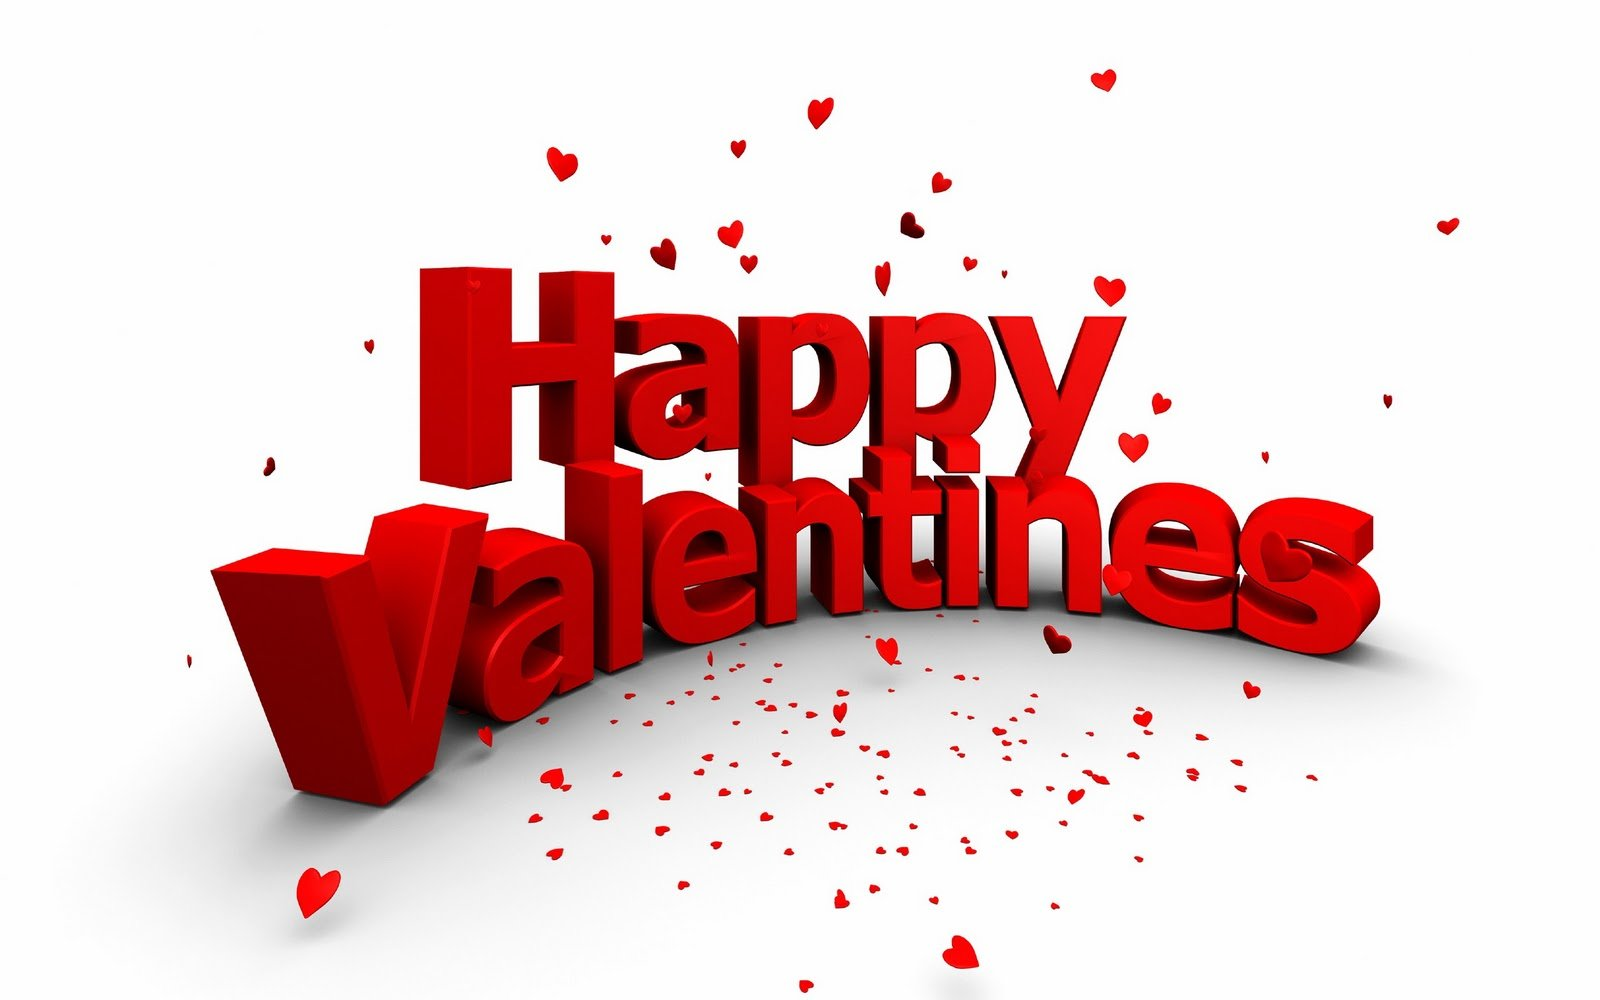 Card E Cards 2013 Top 10 Valentines Day Desktop Wallpapers for 1600x1000